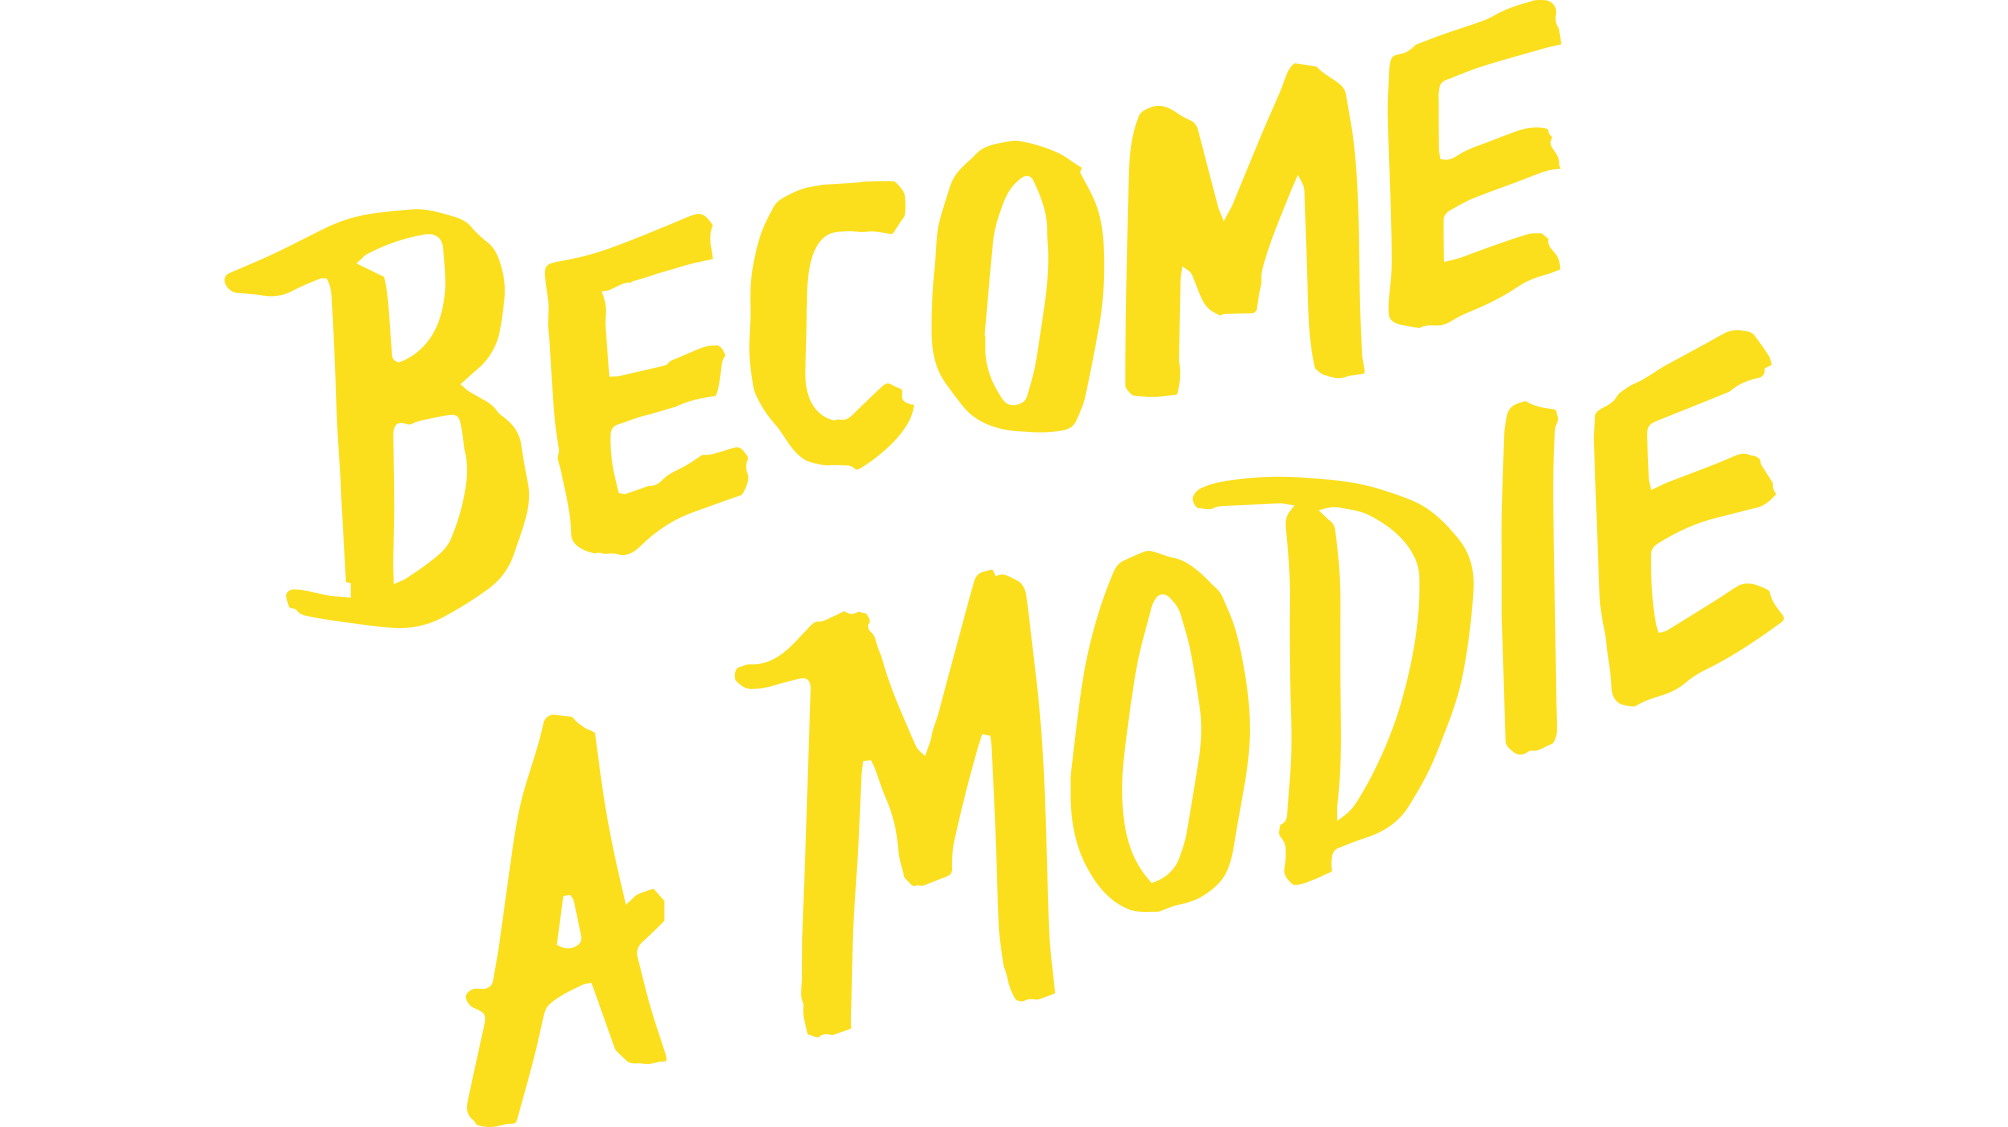 Become a Modie